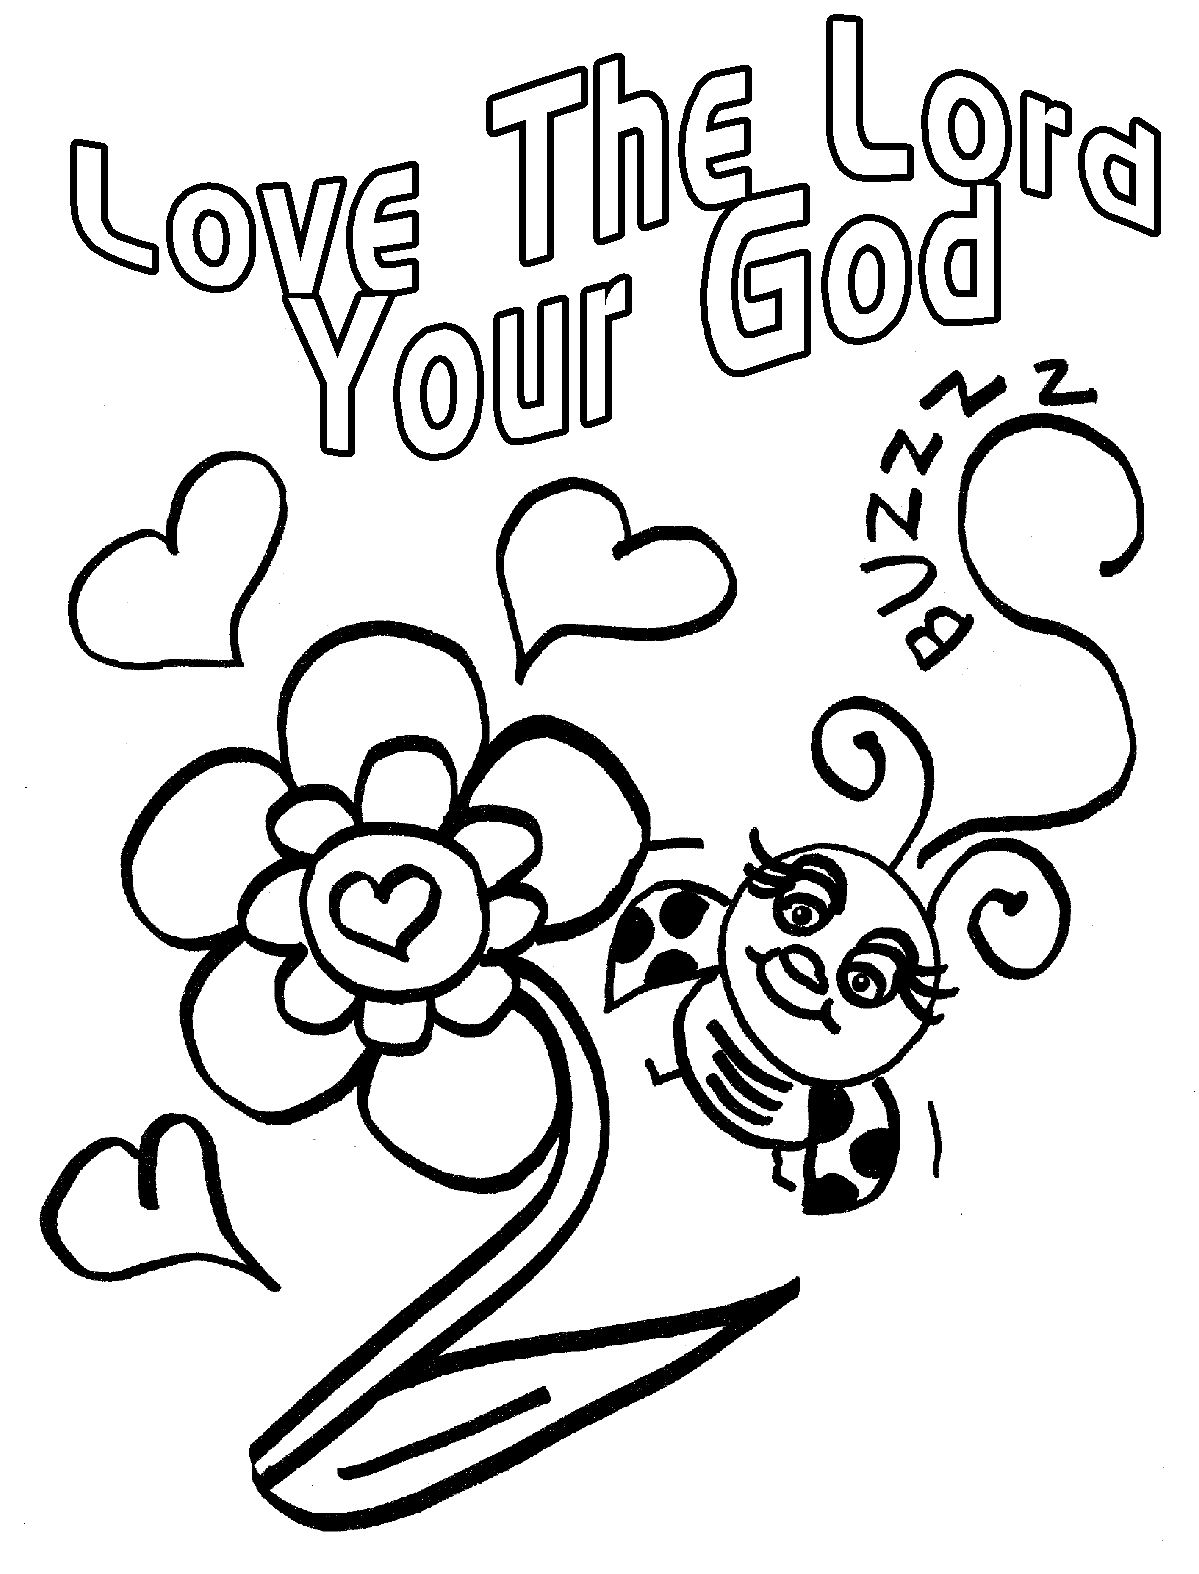 jesus loves the little children coloring page | Use these free ...